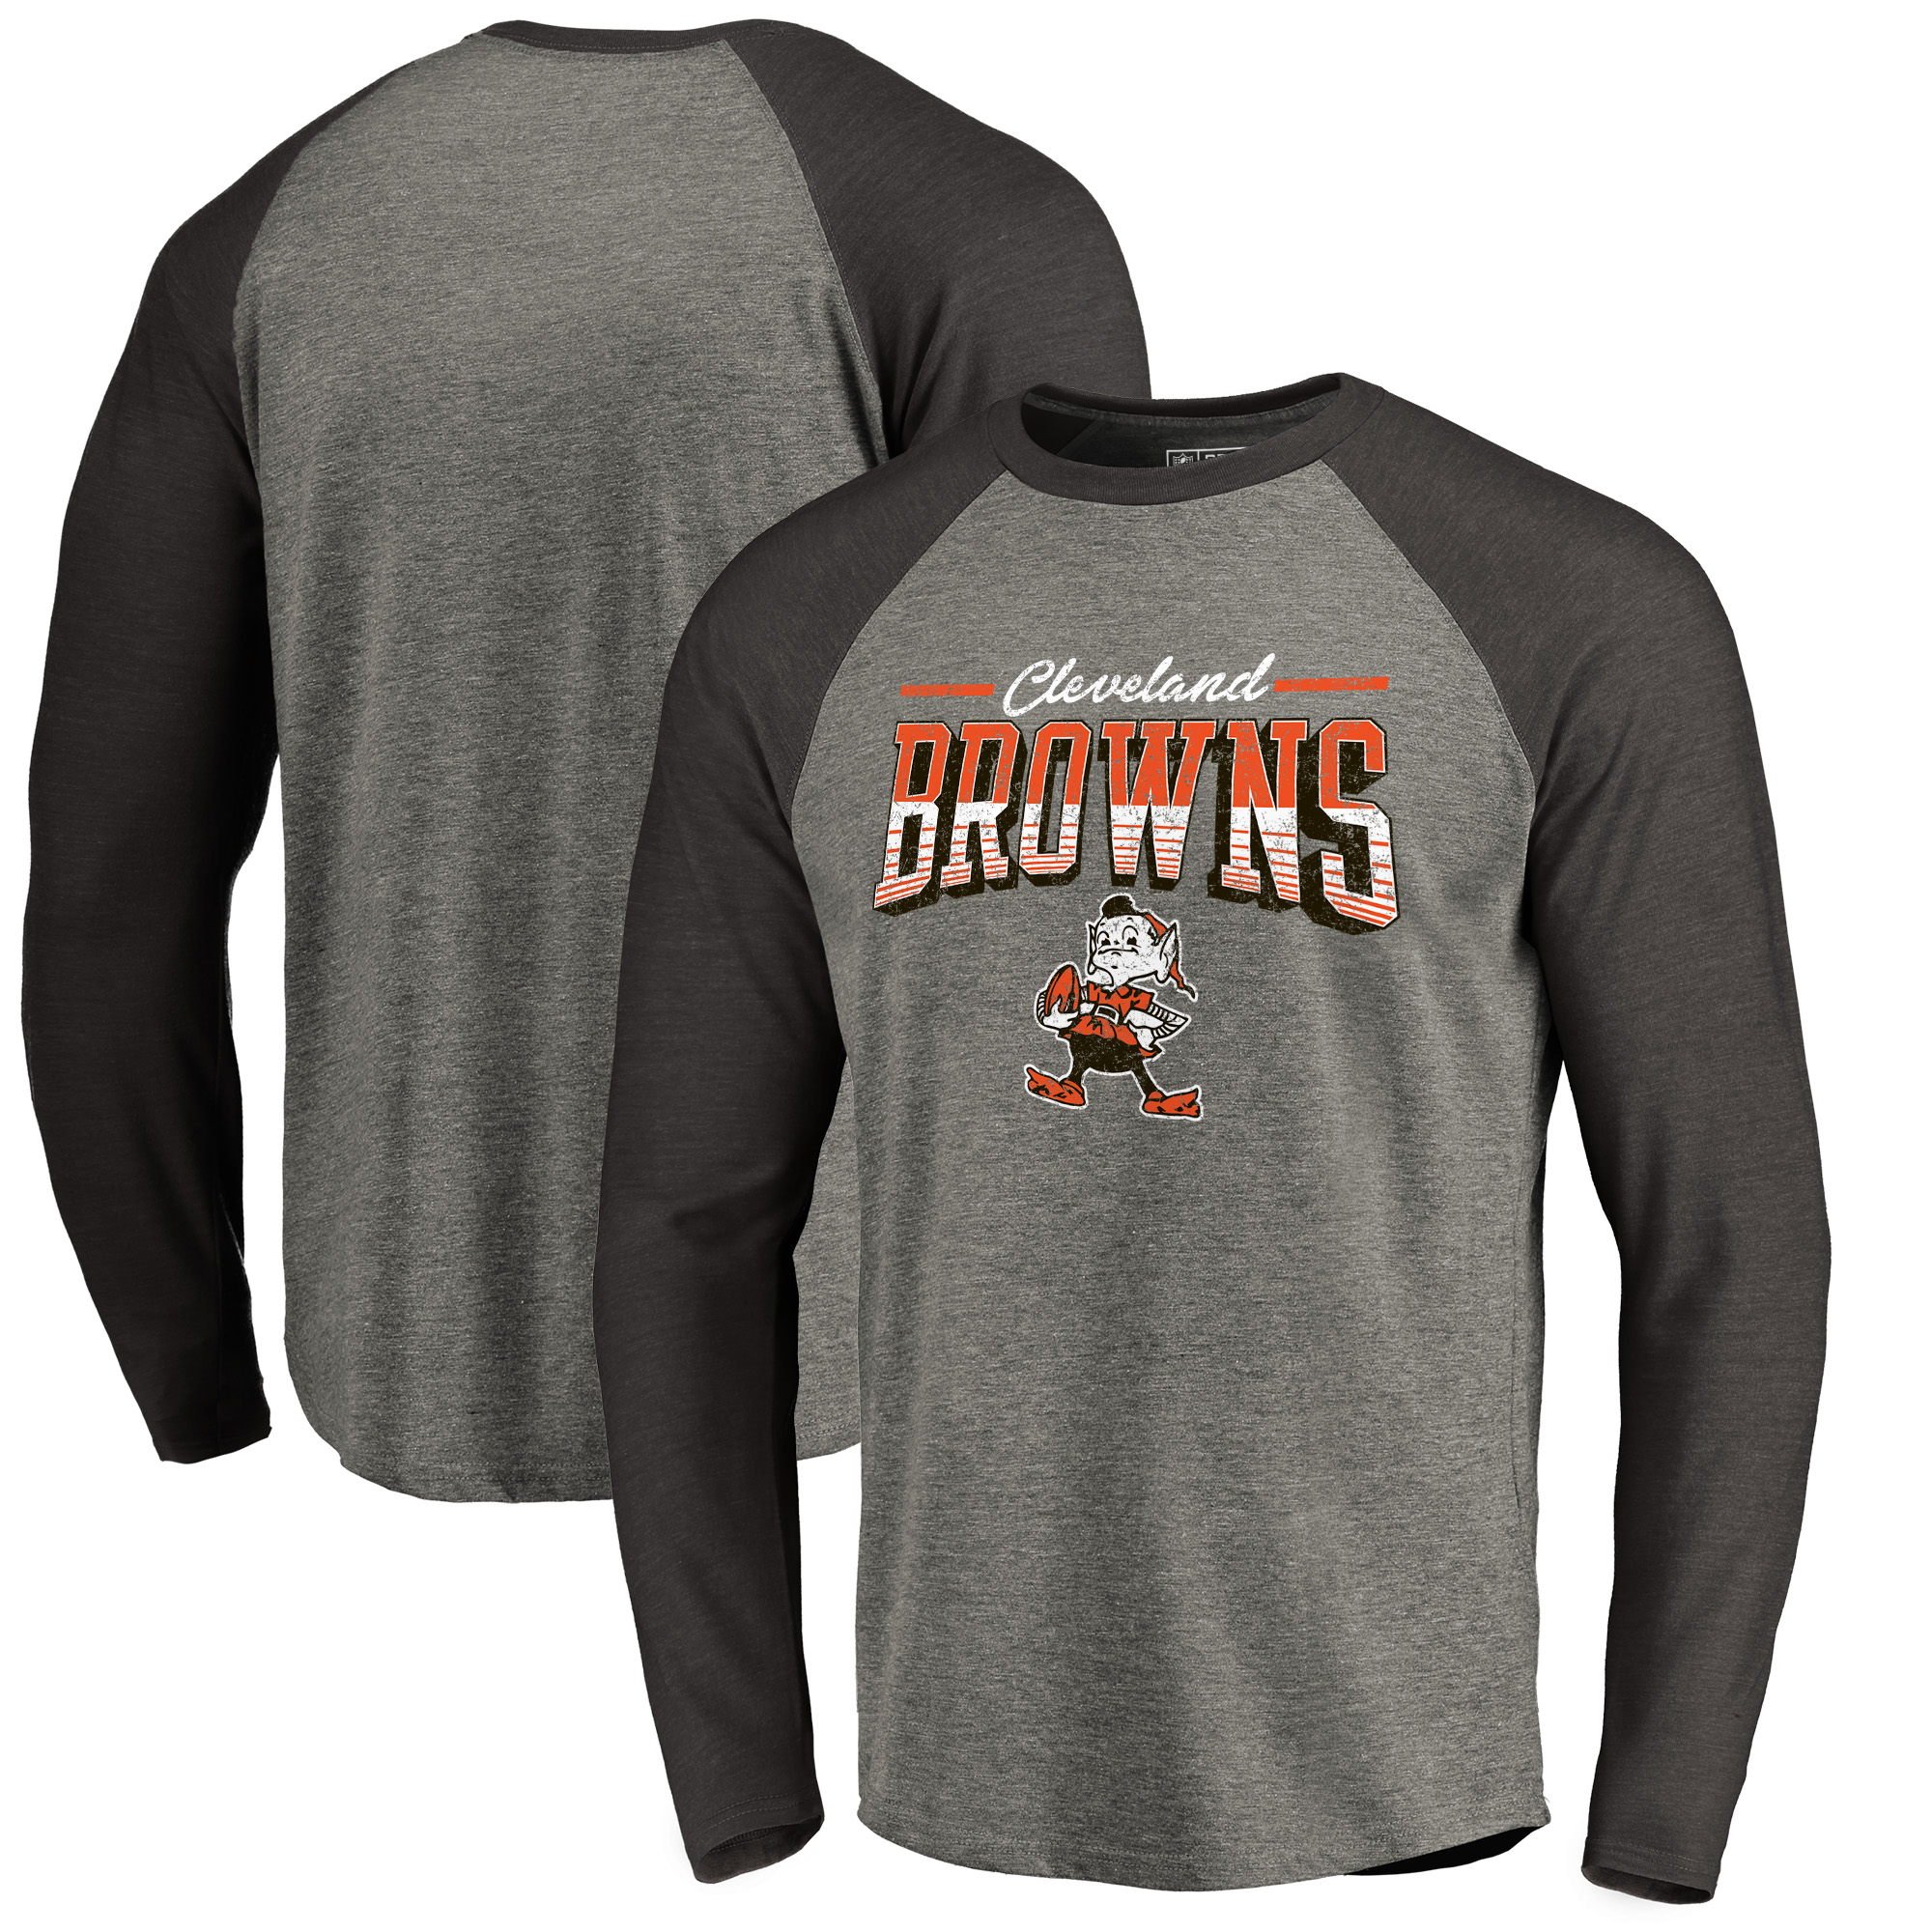 Cleveland Browns NFL Pro Line by Fanatics Branded Throwback Collection Season Ticket Long Sleeve Tri-Blend Raglan T-Shirt - Heathered Gray/Black